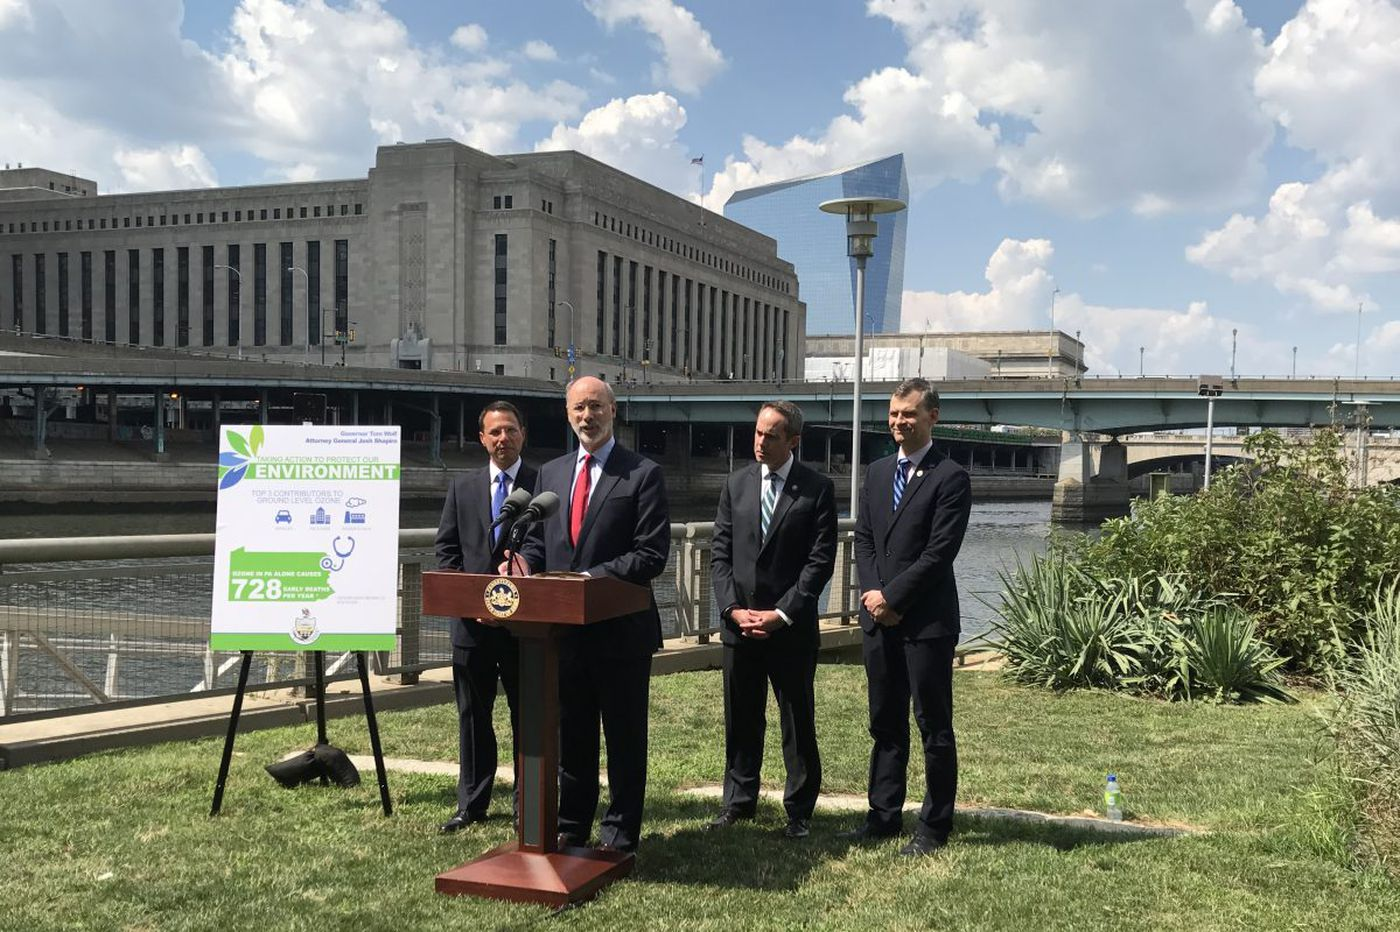 Pennsylvania joins in suit against EPA over ozone pollution